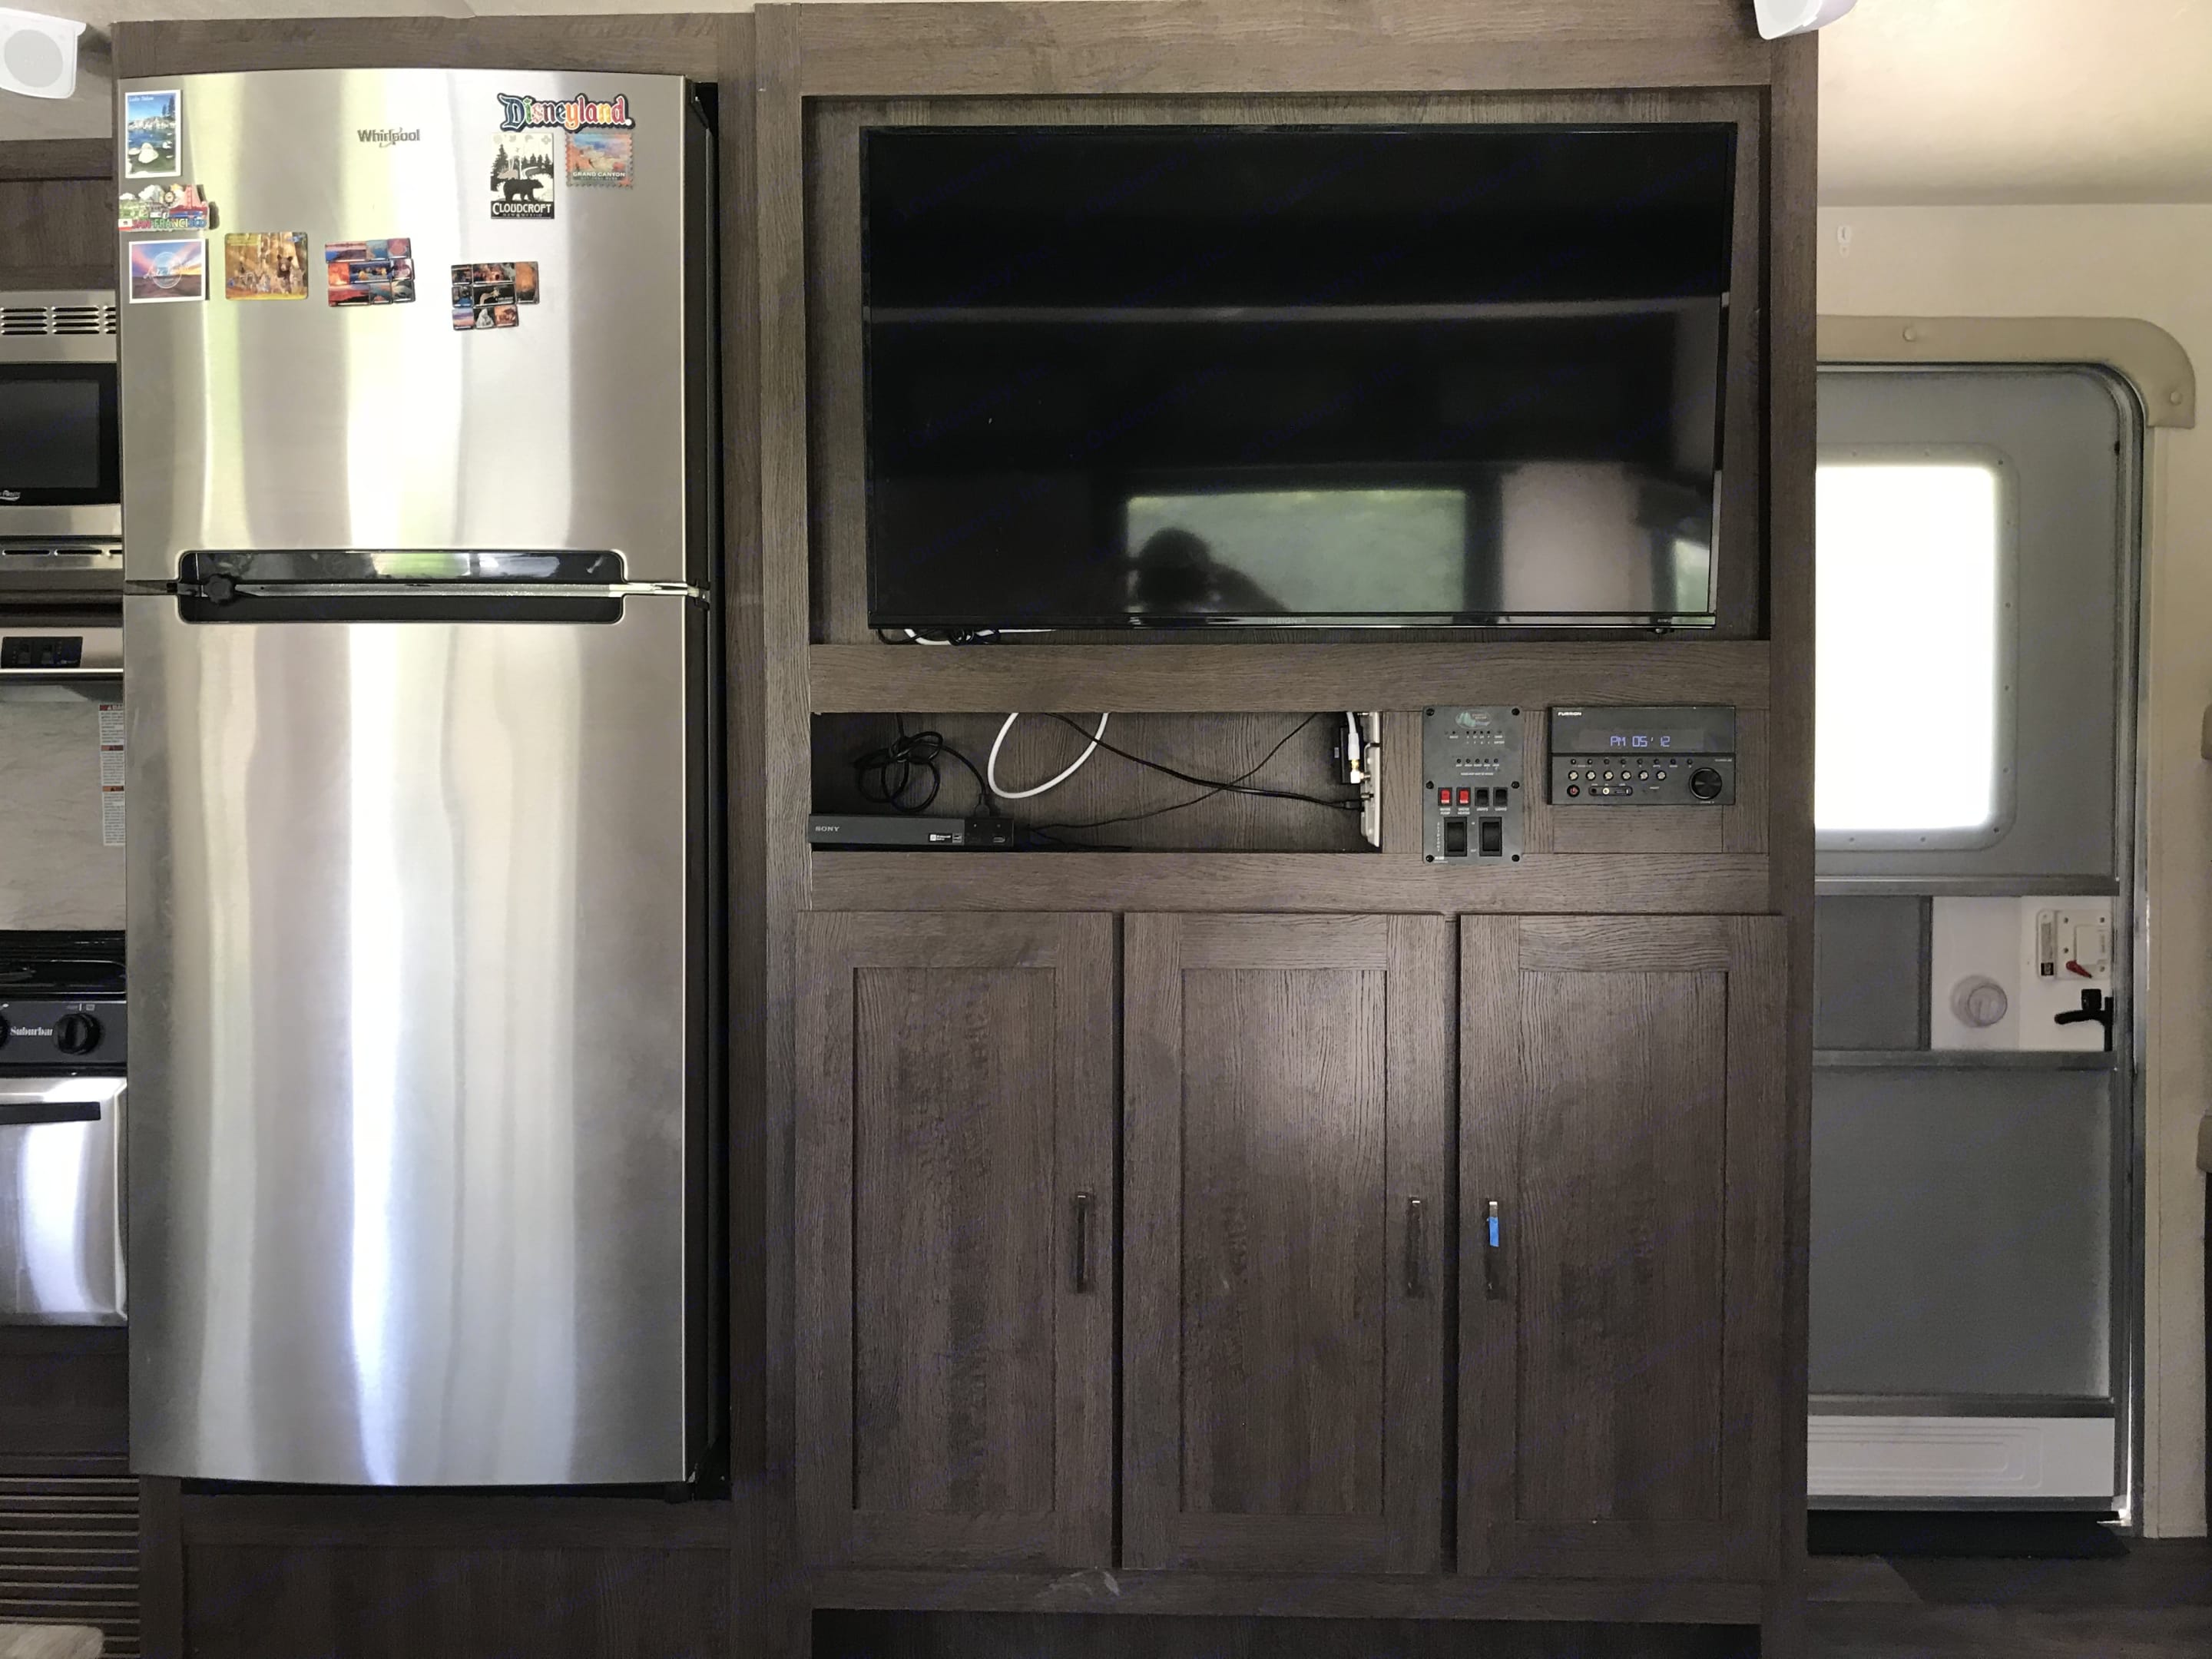 Extra Large Refrigerator for stocking enough food for your trip plus an entertainment center with a DVD player and surround sound system. Great for relaxing inside when the weather isn't nice outside. . Forest River Salem 2018